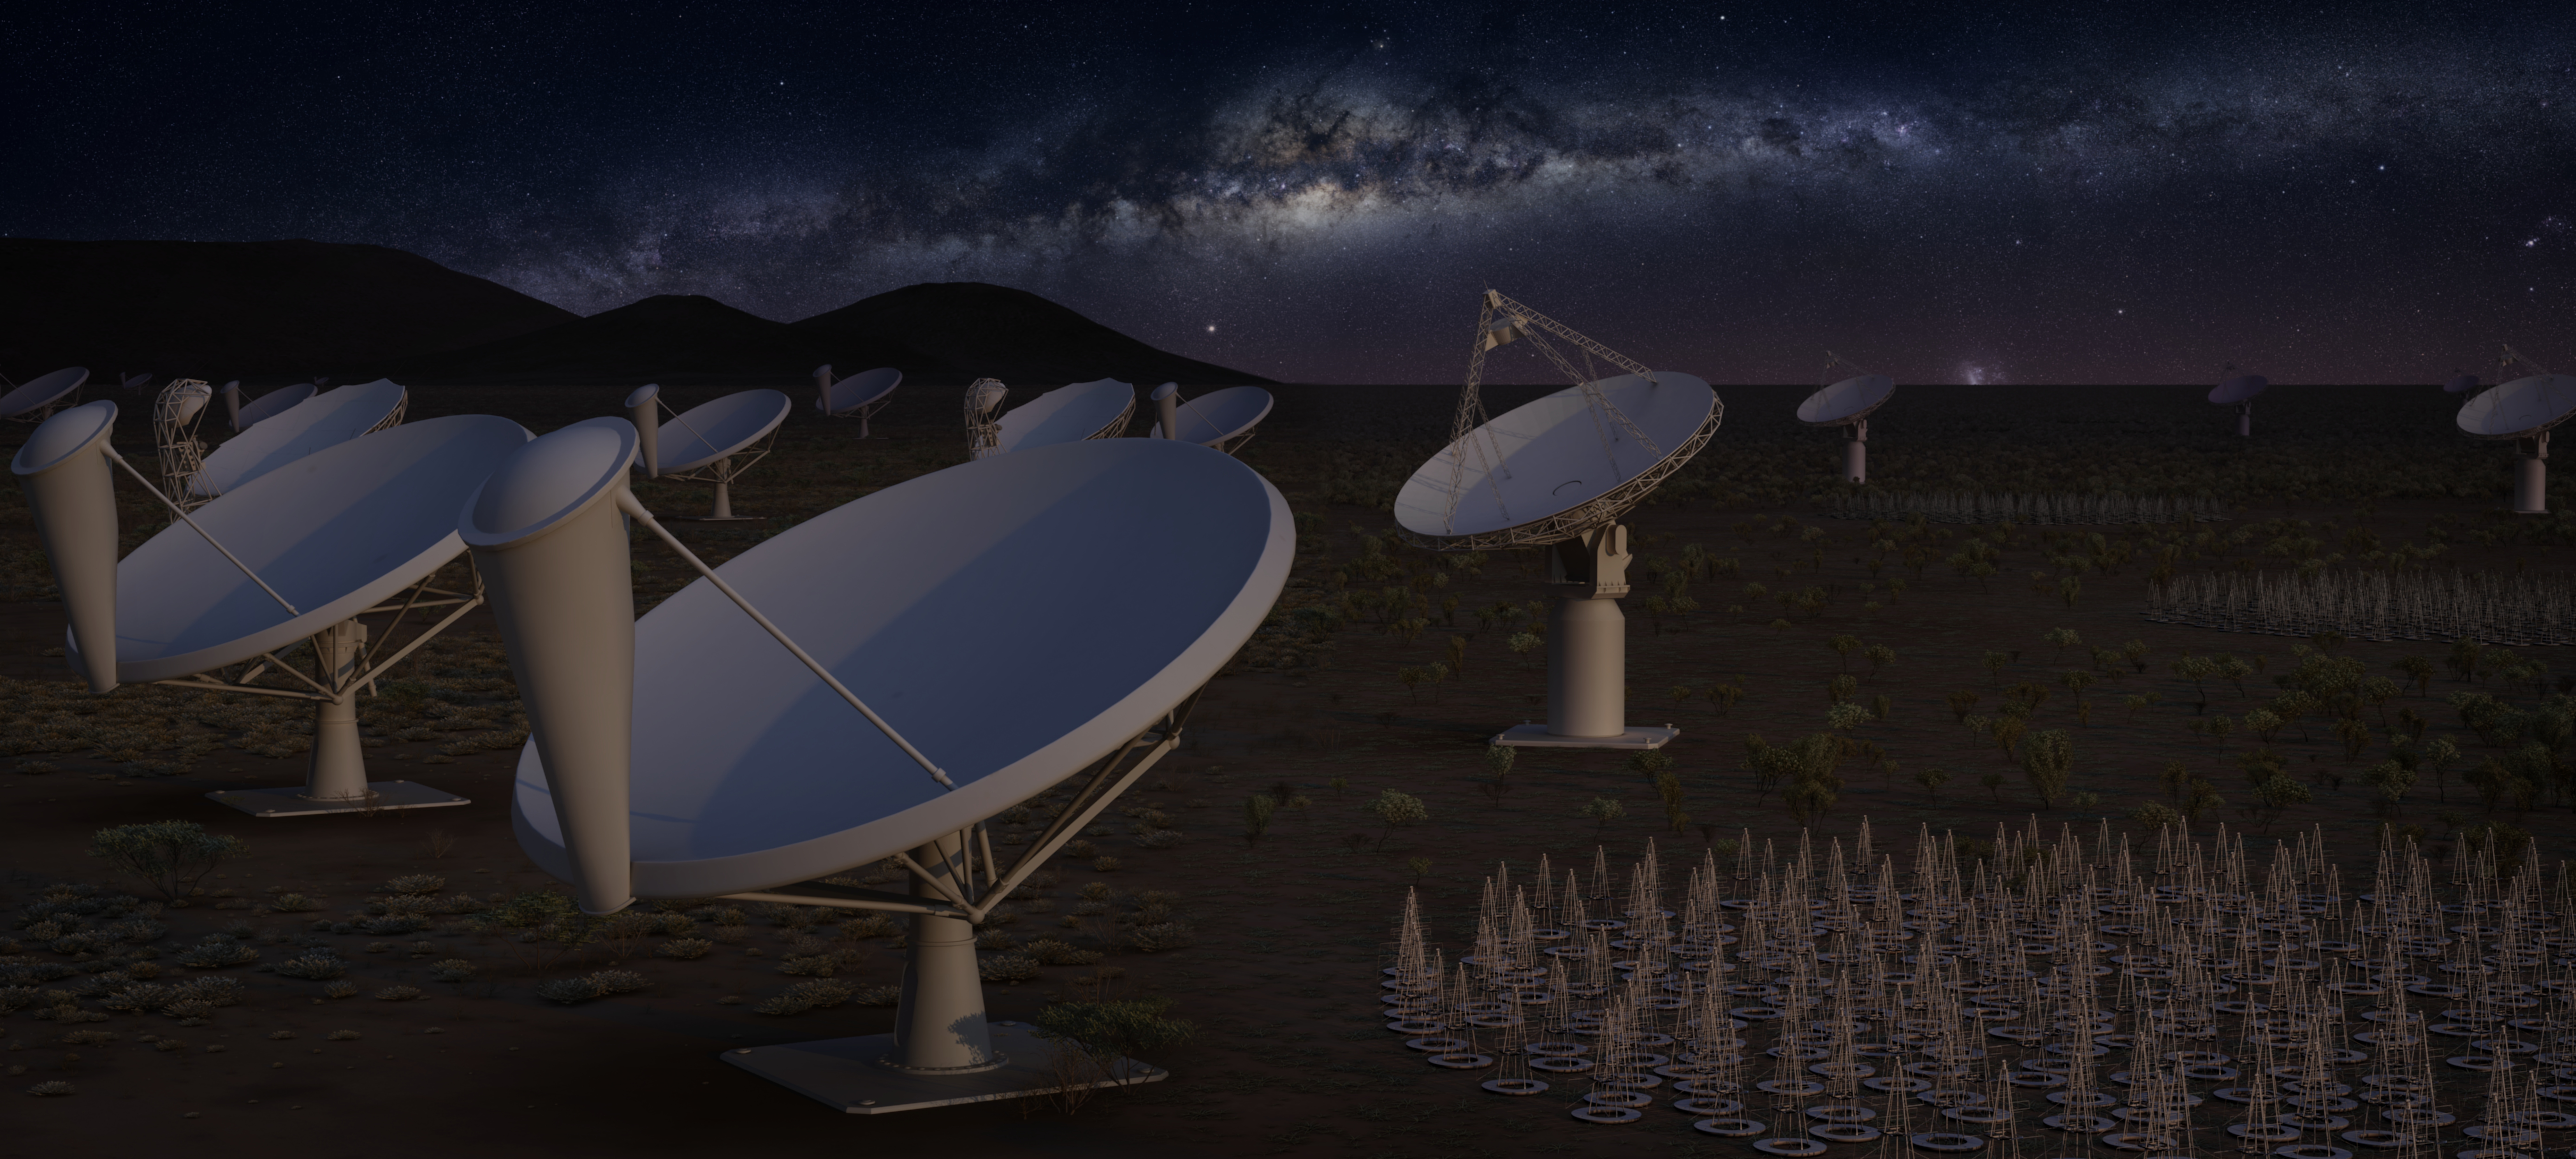 The world's largest radio telescope takes a major step ...